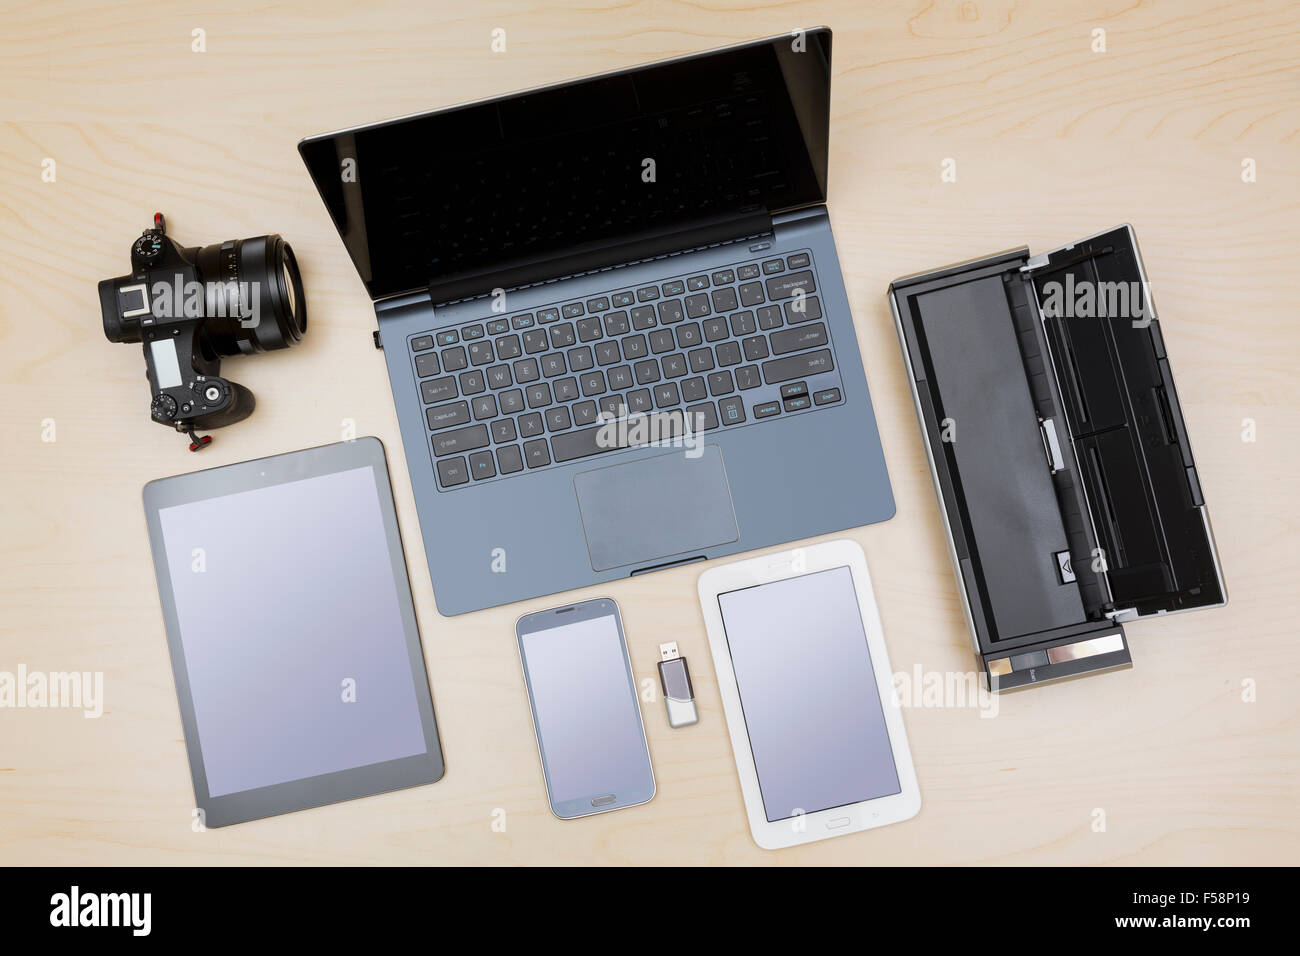 Overhead view of digital equipment, devices or gadgets - laptop, notebook, camera, tablet, phone, scanner on a desk - Stock Image